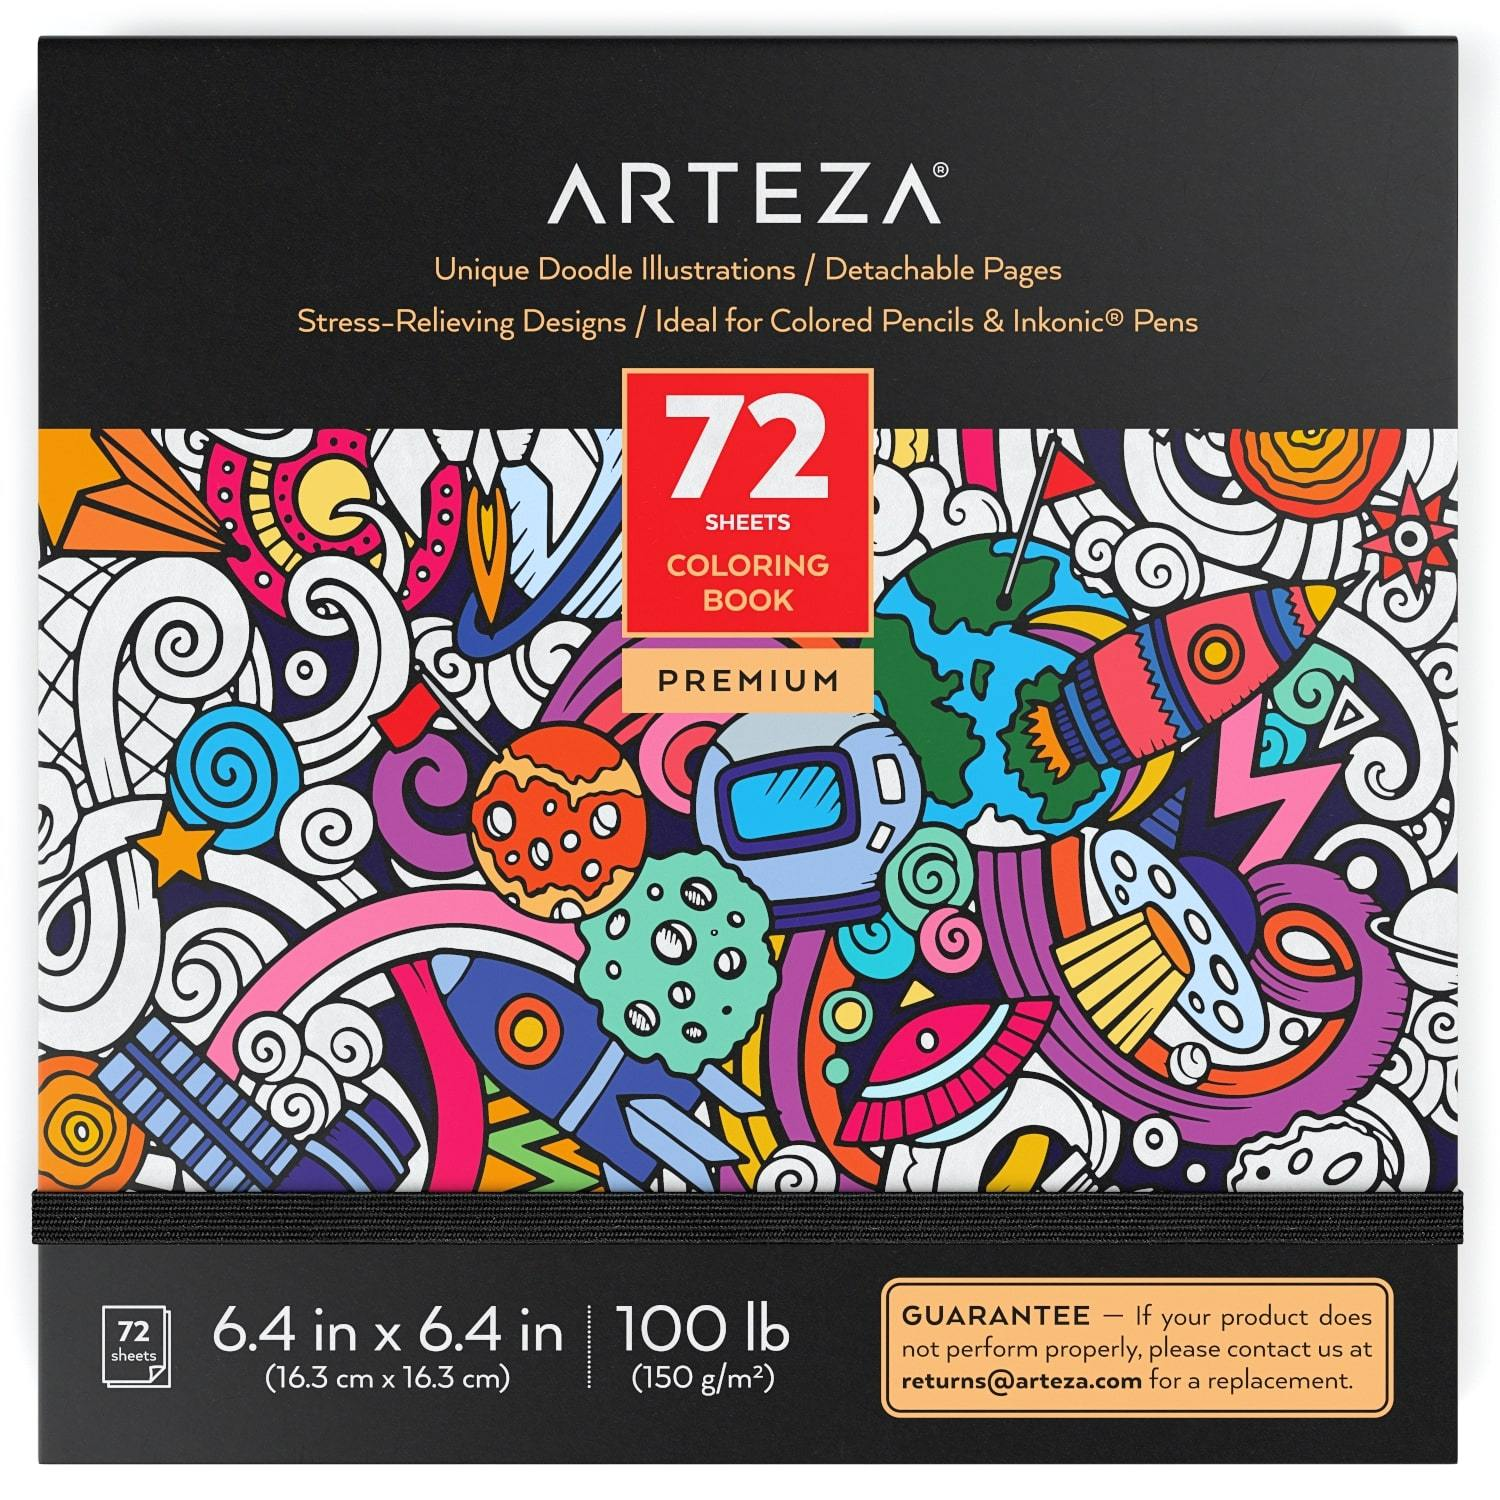 72 Relaxing Coloring Pages for Relieving Stress and Anxiety for Adults and Teens Encourages Meditation Promotes Mindfulness Black Outlines Arteza Doodle Coloring Book for Adults